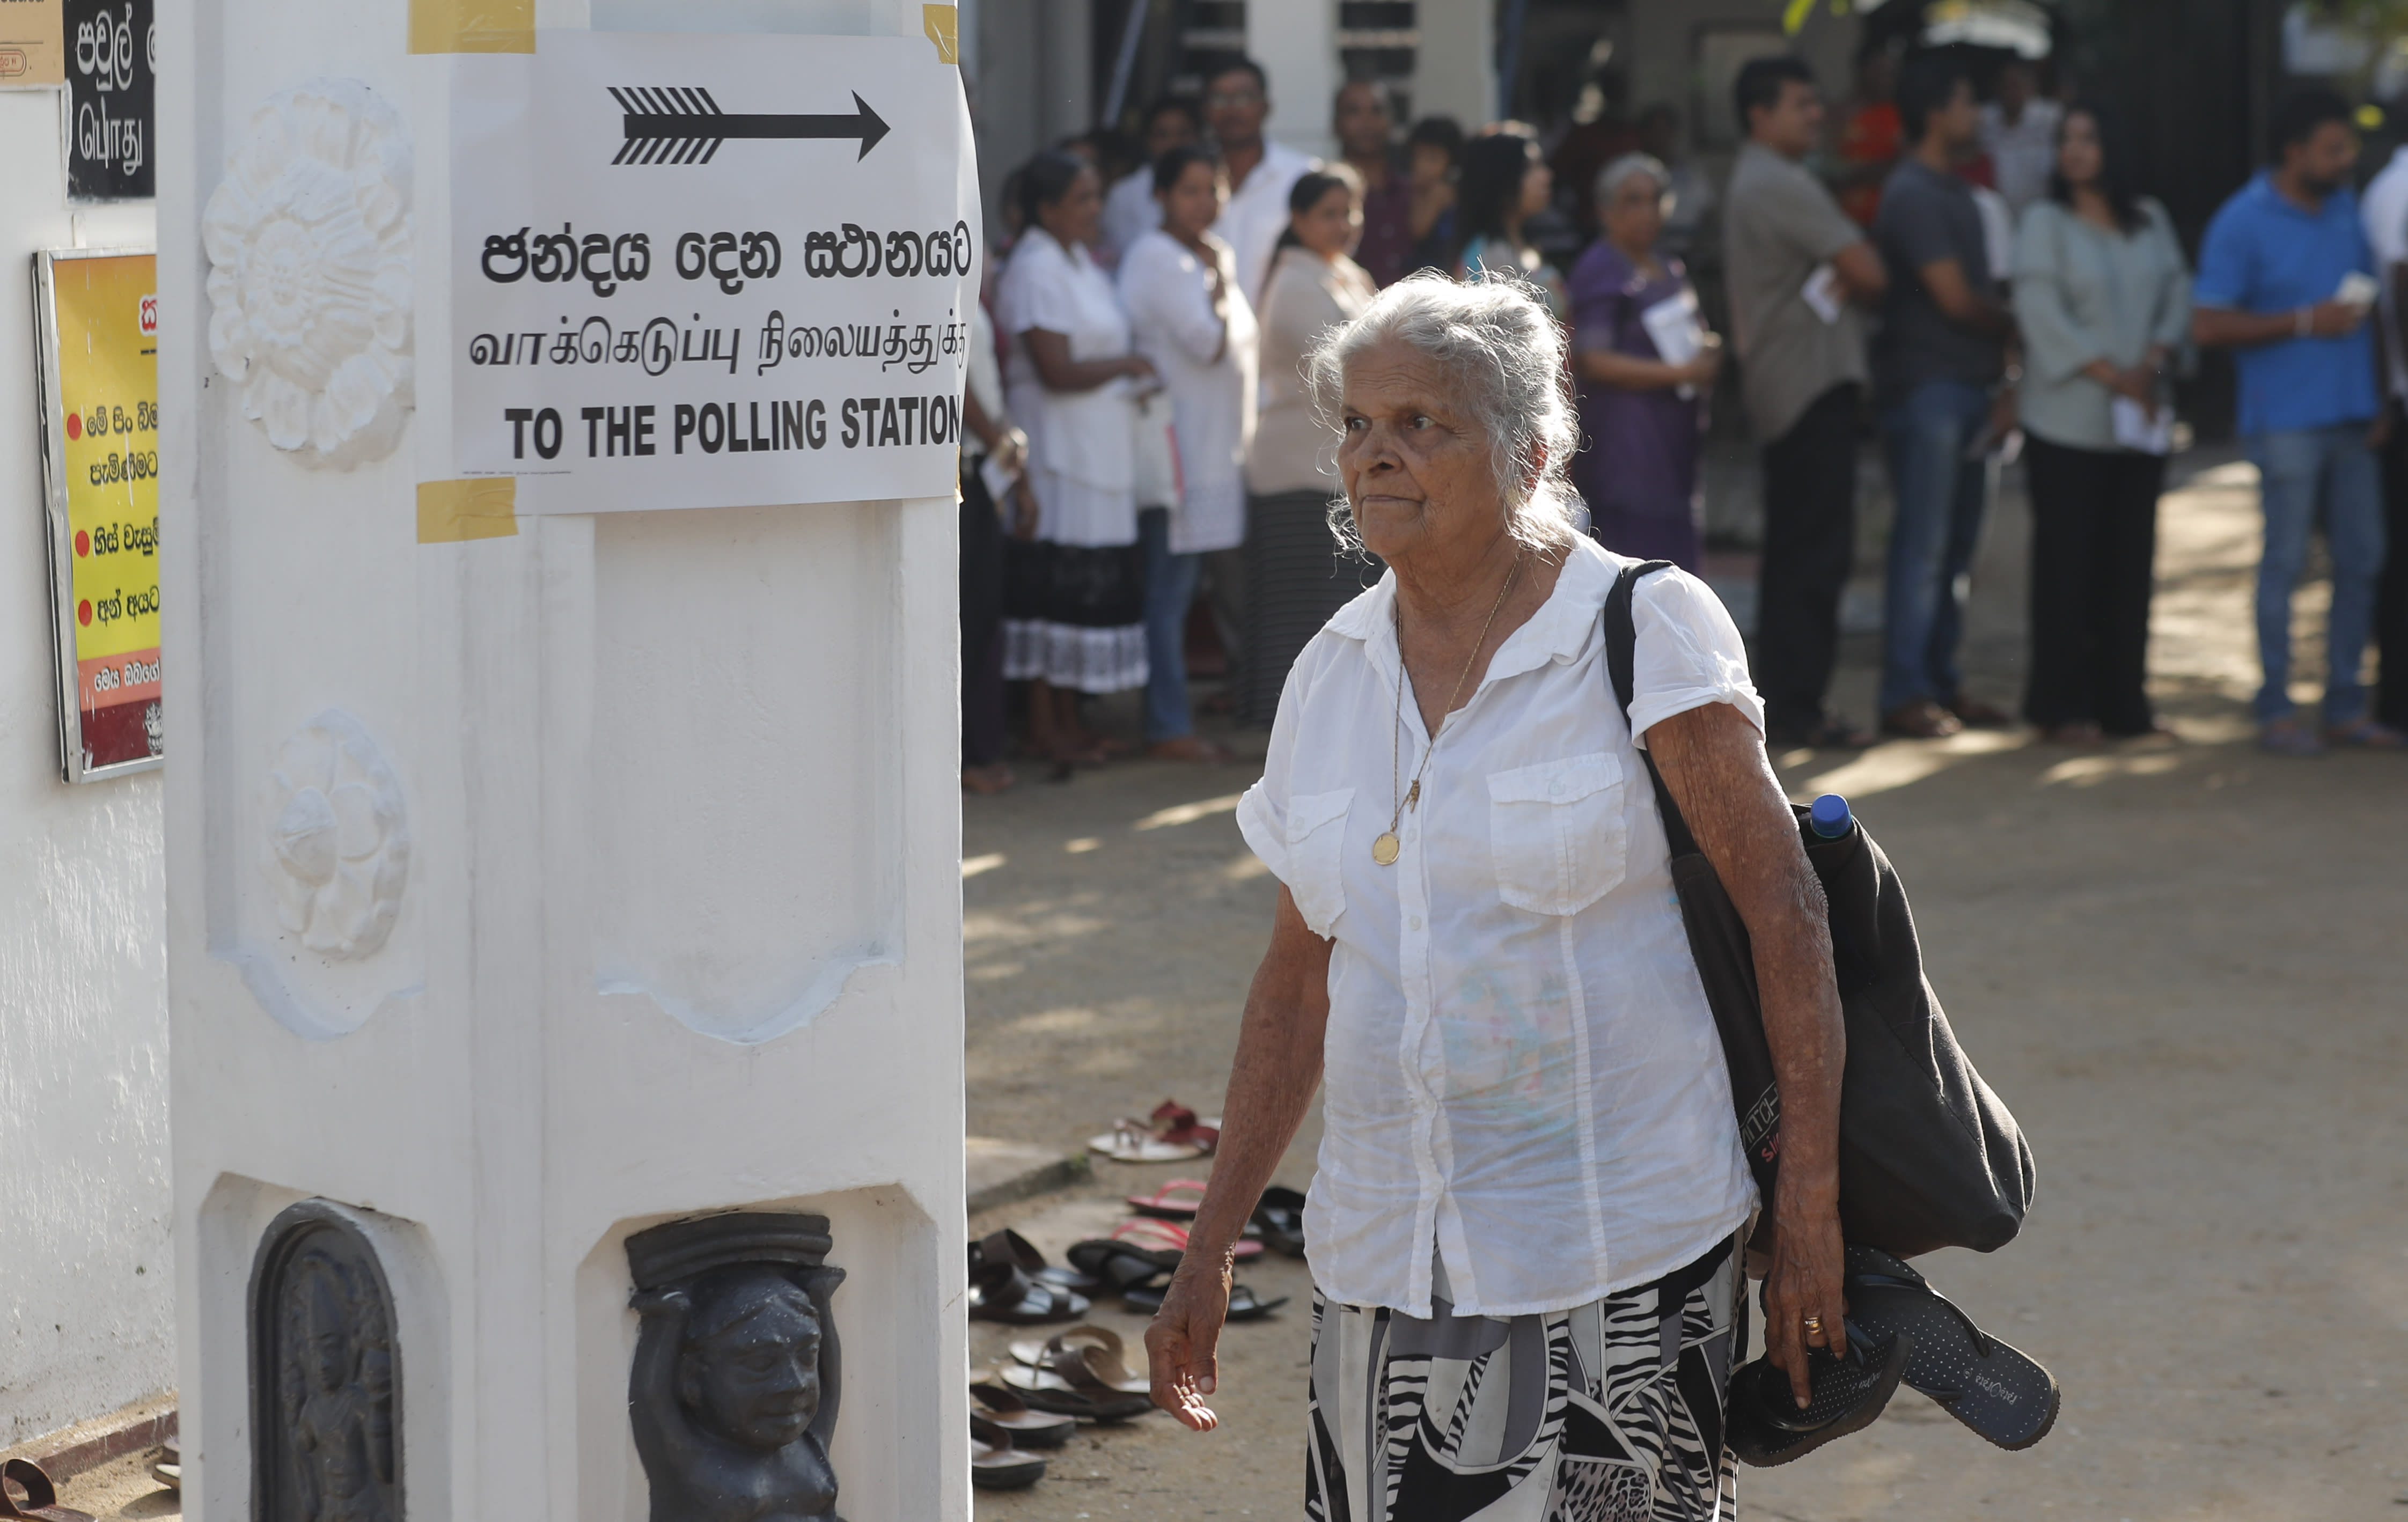 A Sri Lankan elderly woman leaves after casting her vote as others queue at a polling station during the presidential election in Colombo, Sri Lanka, Saturday, Nov. 16, 2019. Polls opened in Sri Lanka's presidential election Saturday after weeks of campaigning that largely focused on national security and religious extremism in the backdrop of the deadly Islamic State-inspired suicide bomb attacks on Easter Sunday. (AP Photo/Eranga Jayawardena)